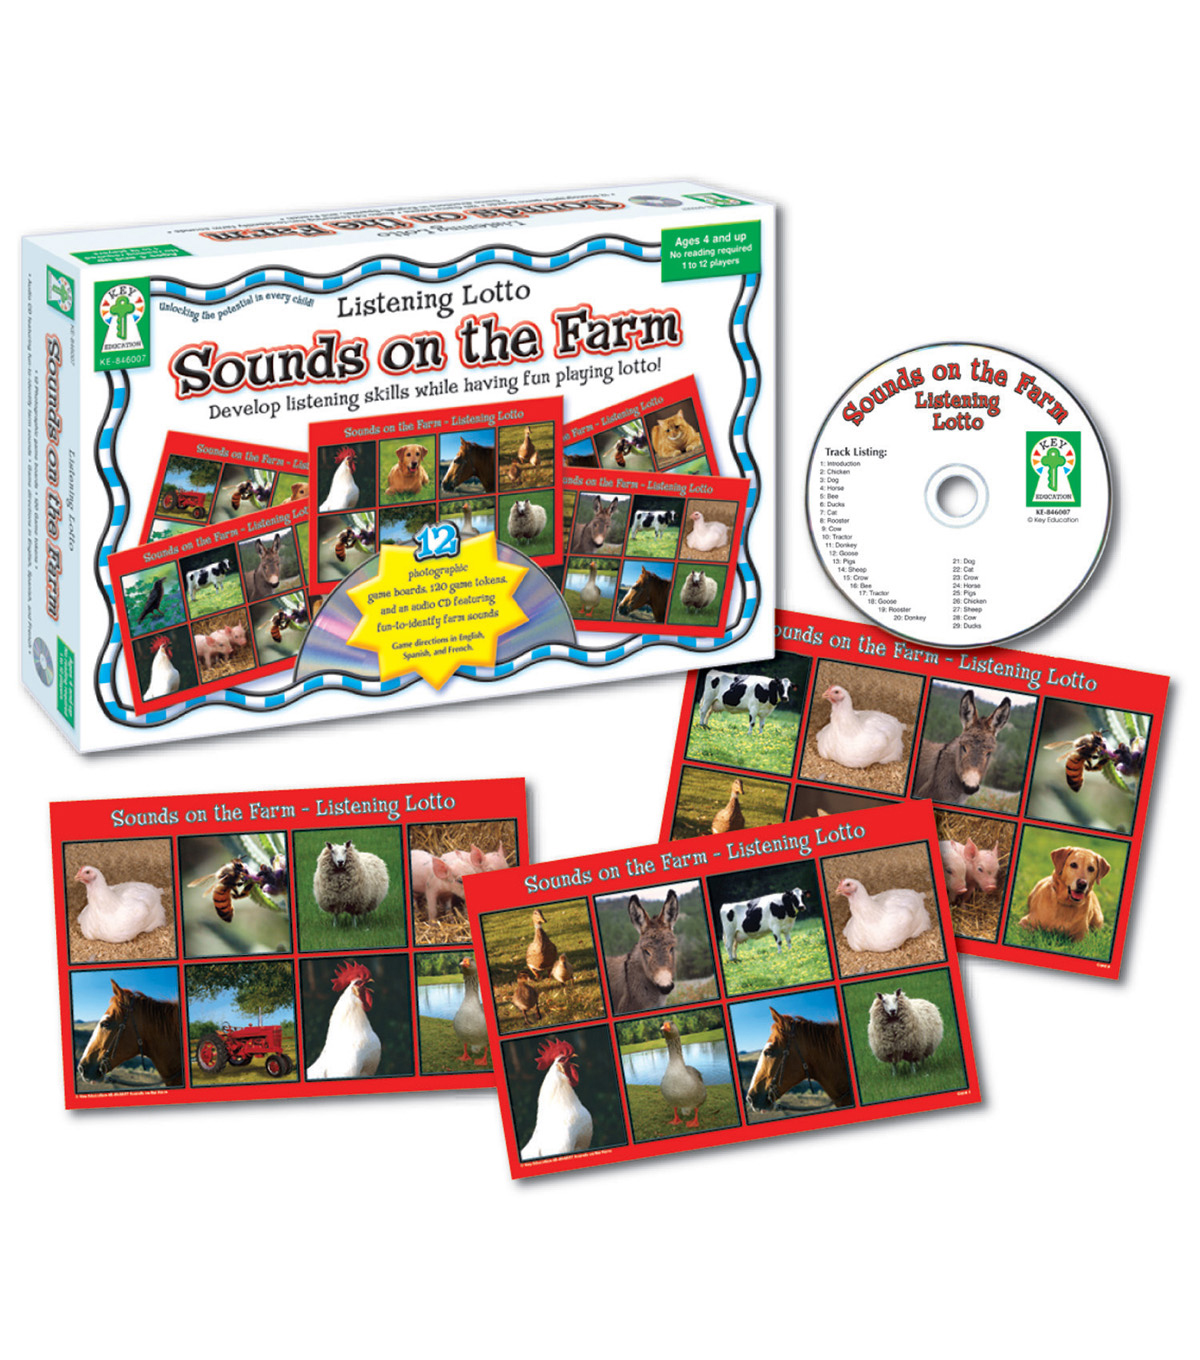 Key Education Listening Lotto: Sounds on the Farm Board Game, Grade PK-1